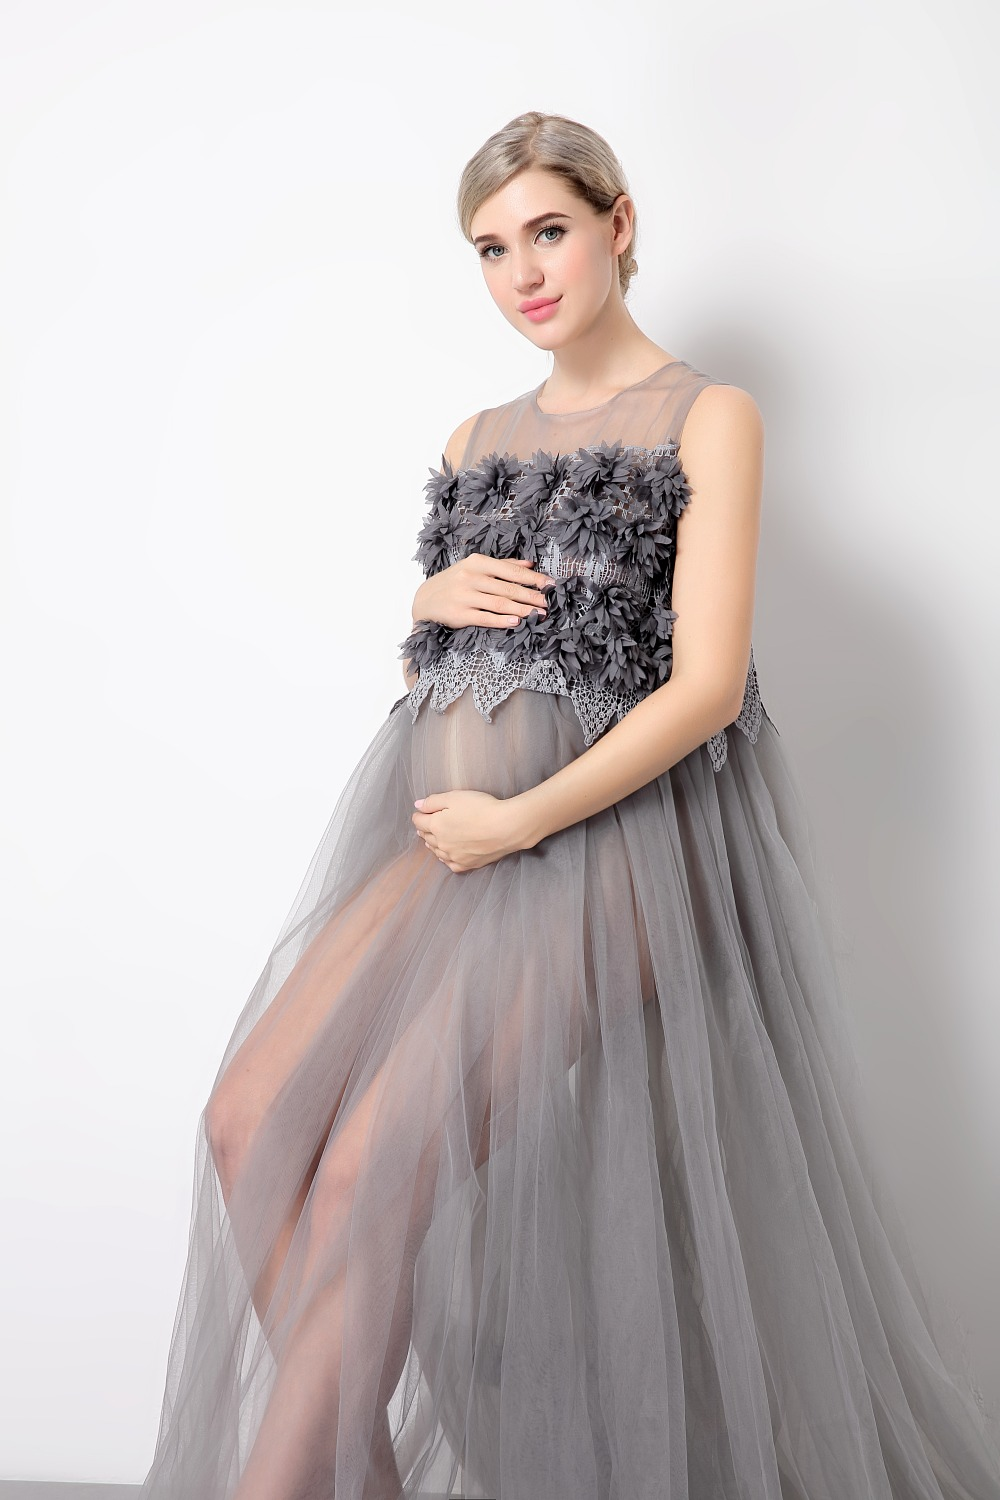 ef80bf08eca Lace Maternity Dresses For Baby Shower - Data Dynamic AG